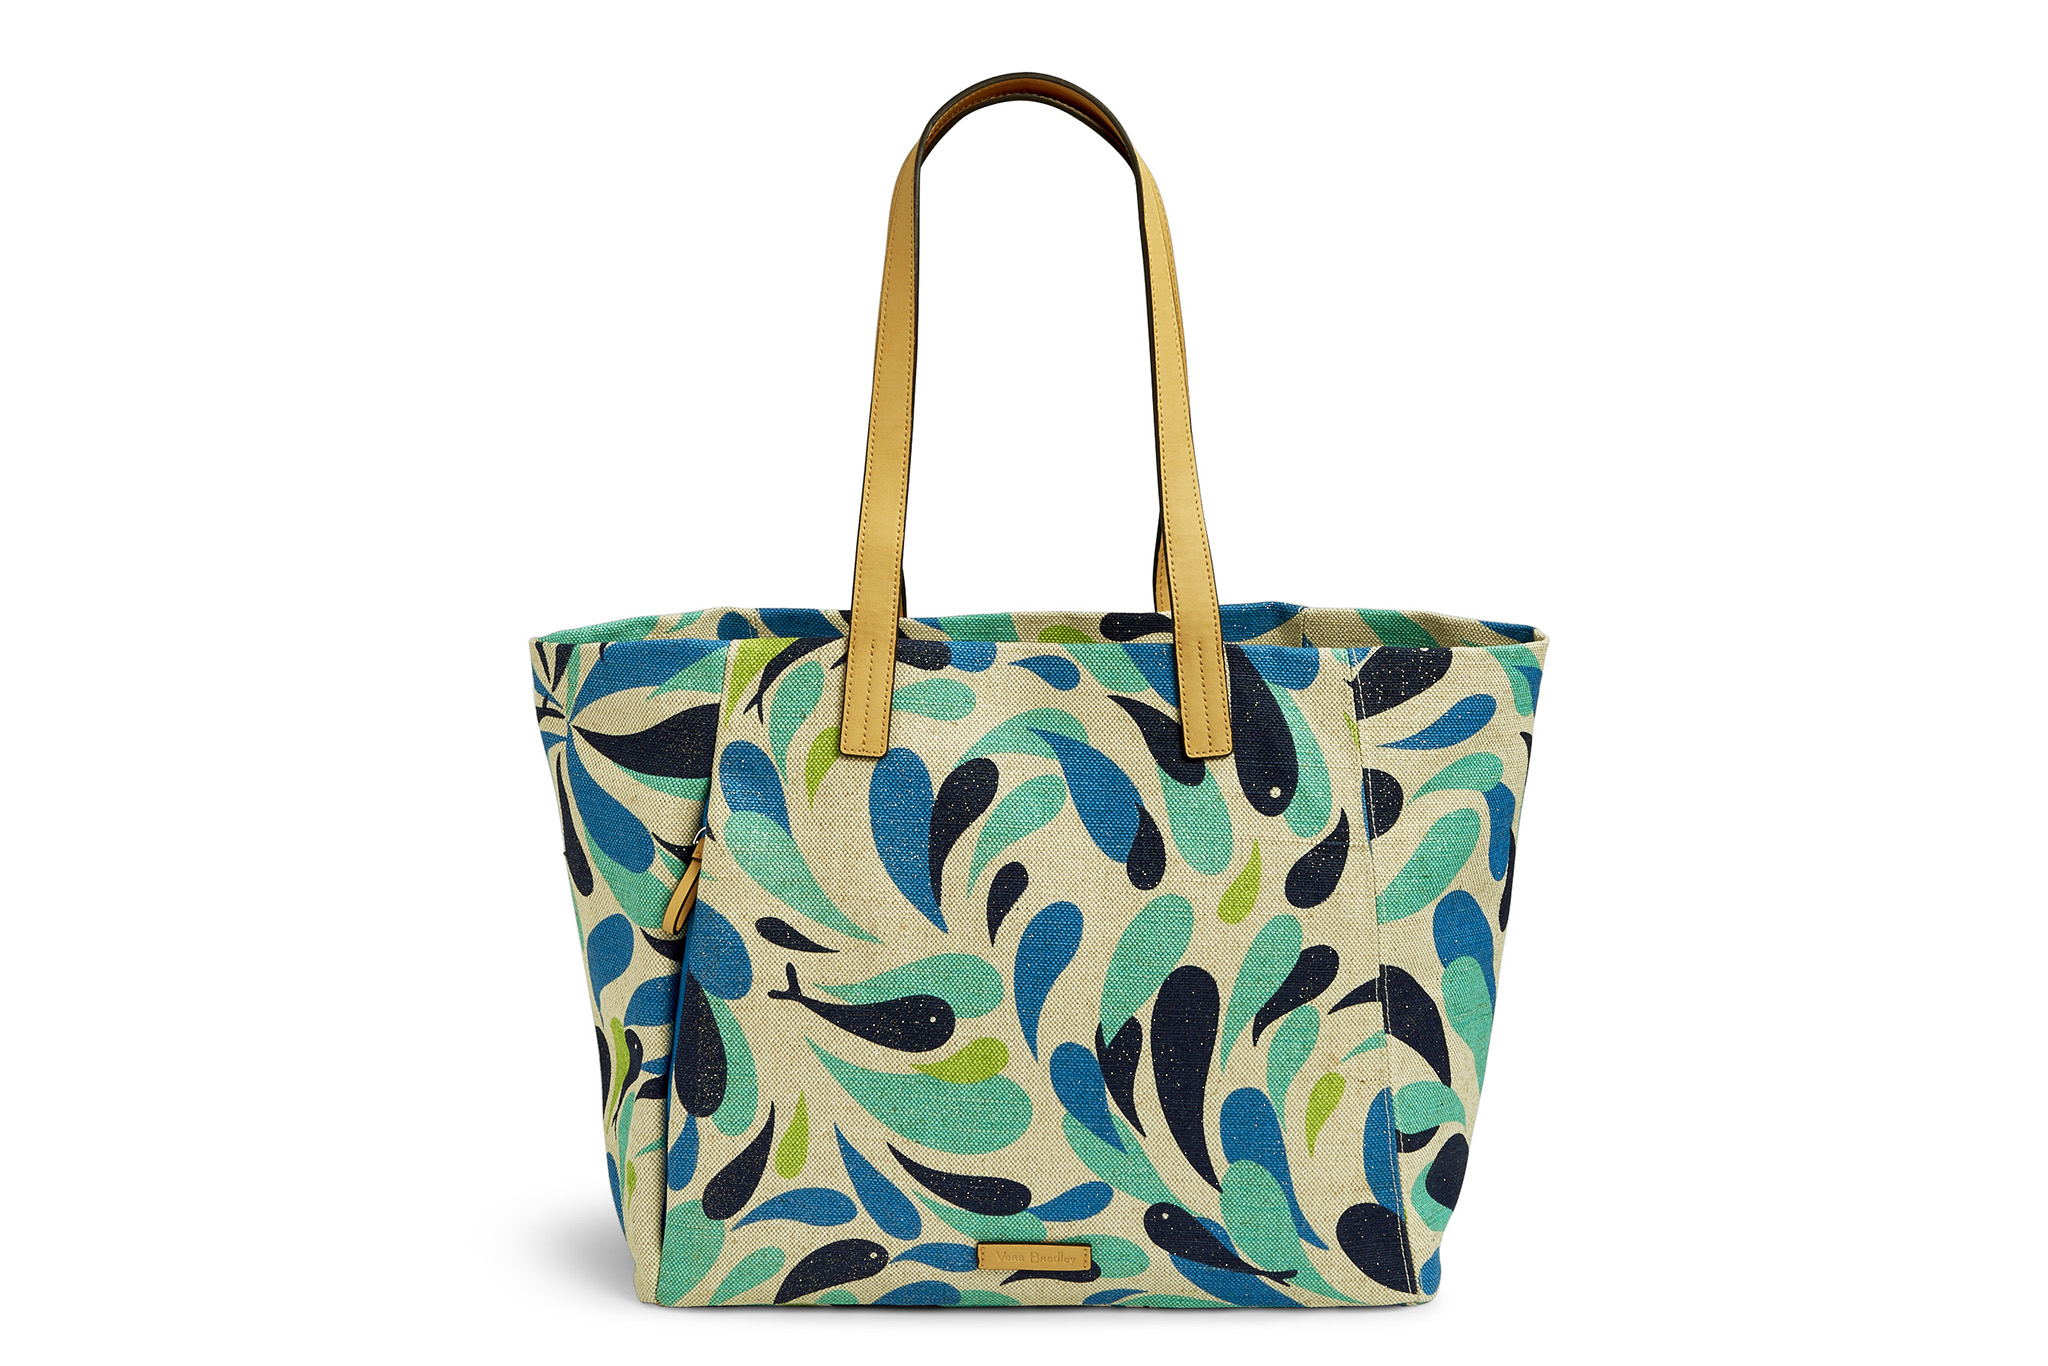 A tote from Vera Bradley's spring/summer 2018 collection.